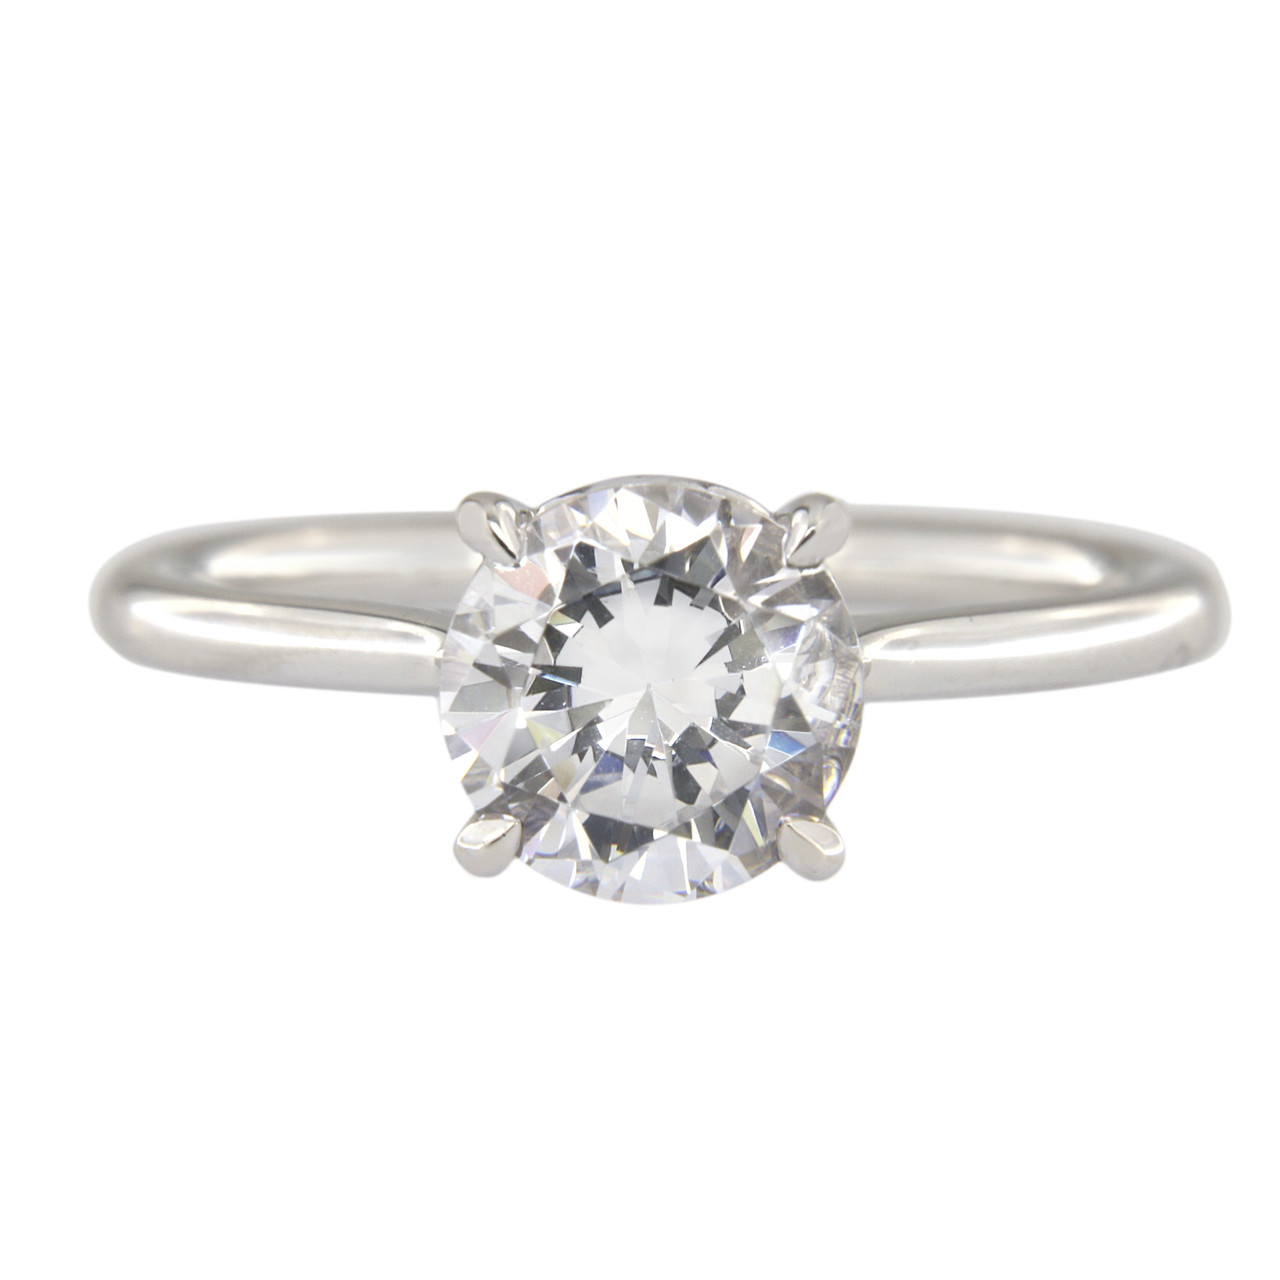 Solitaire Engagement Ring Simple Engagement Ring Diamond Engagement Rings